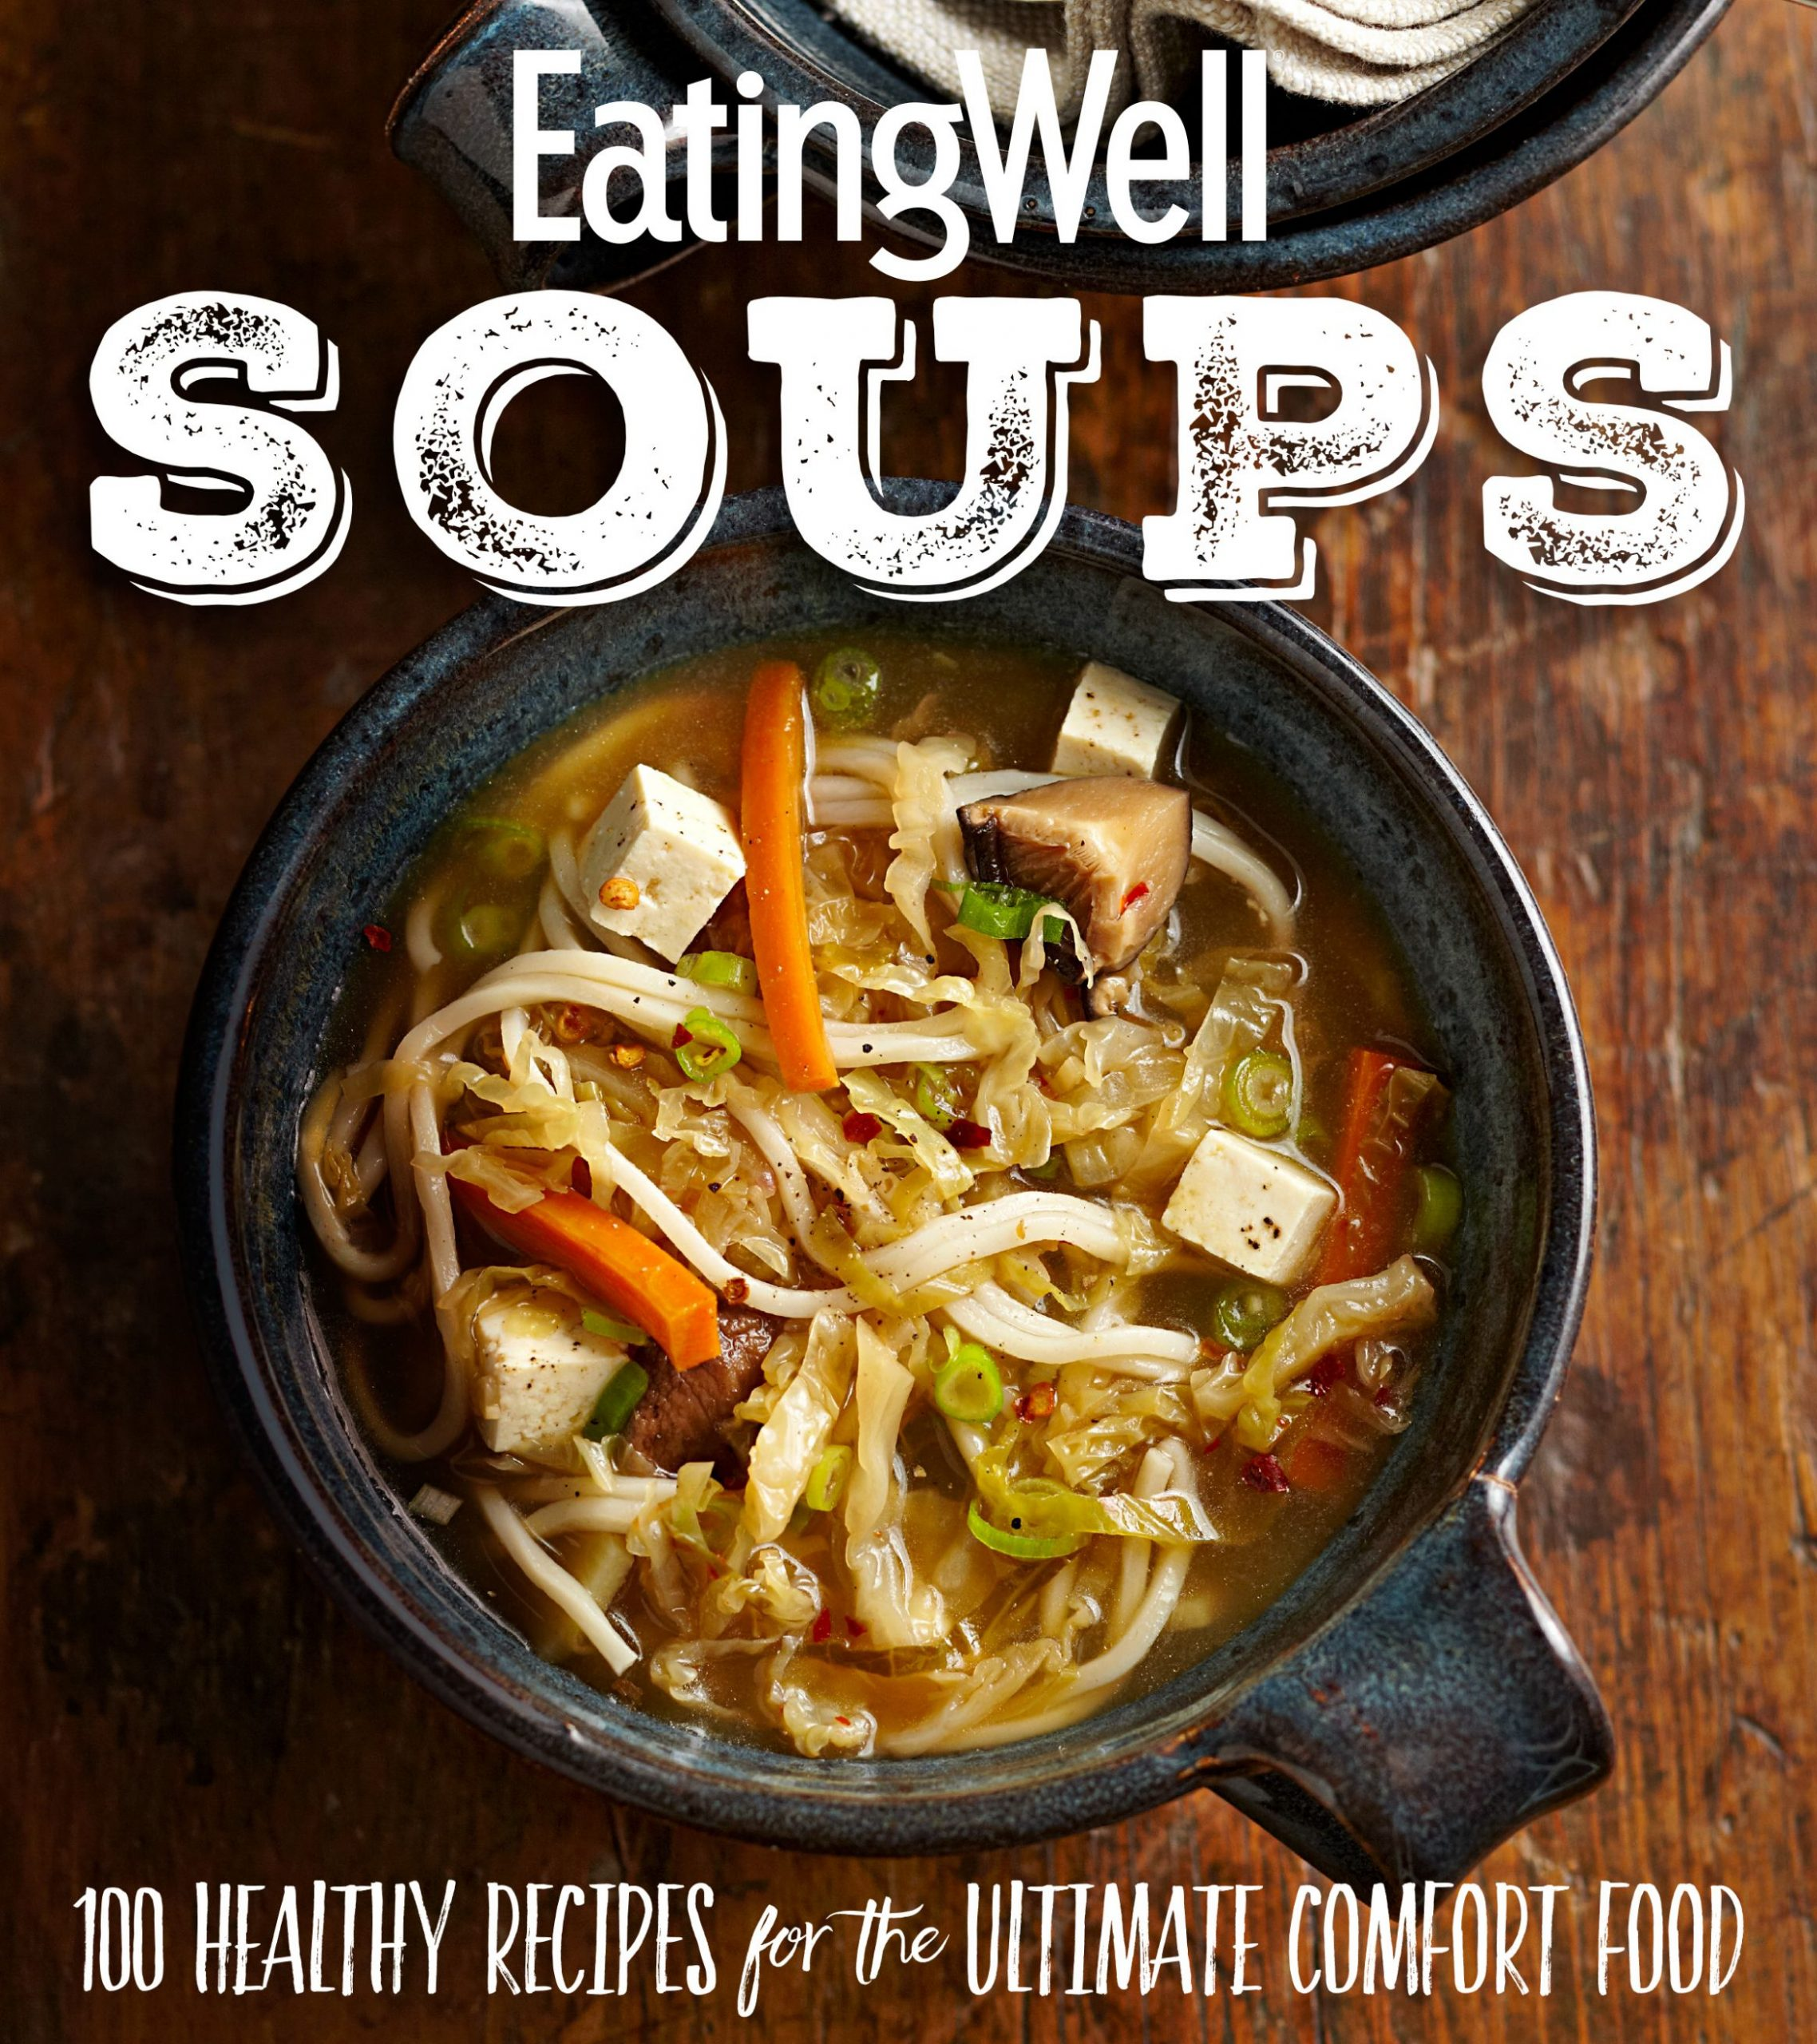 Eatingwell Soups: 12 Healthy Recipes for the Ultimate Comfort Food  (Paperback) - Walmart